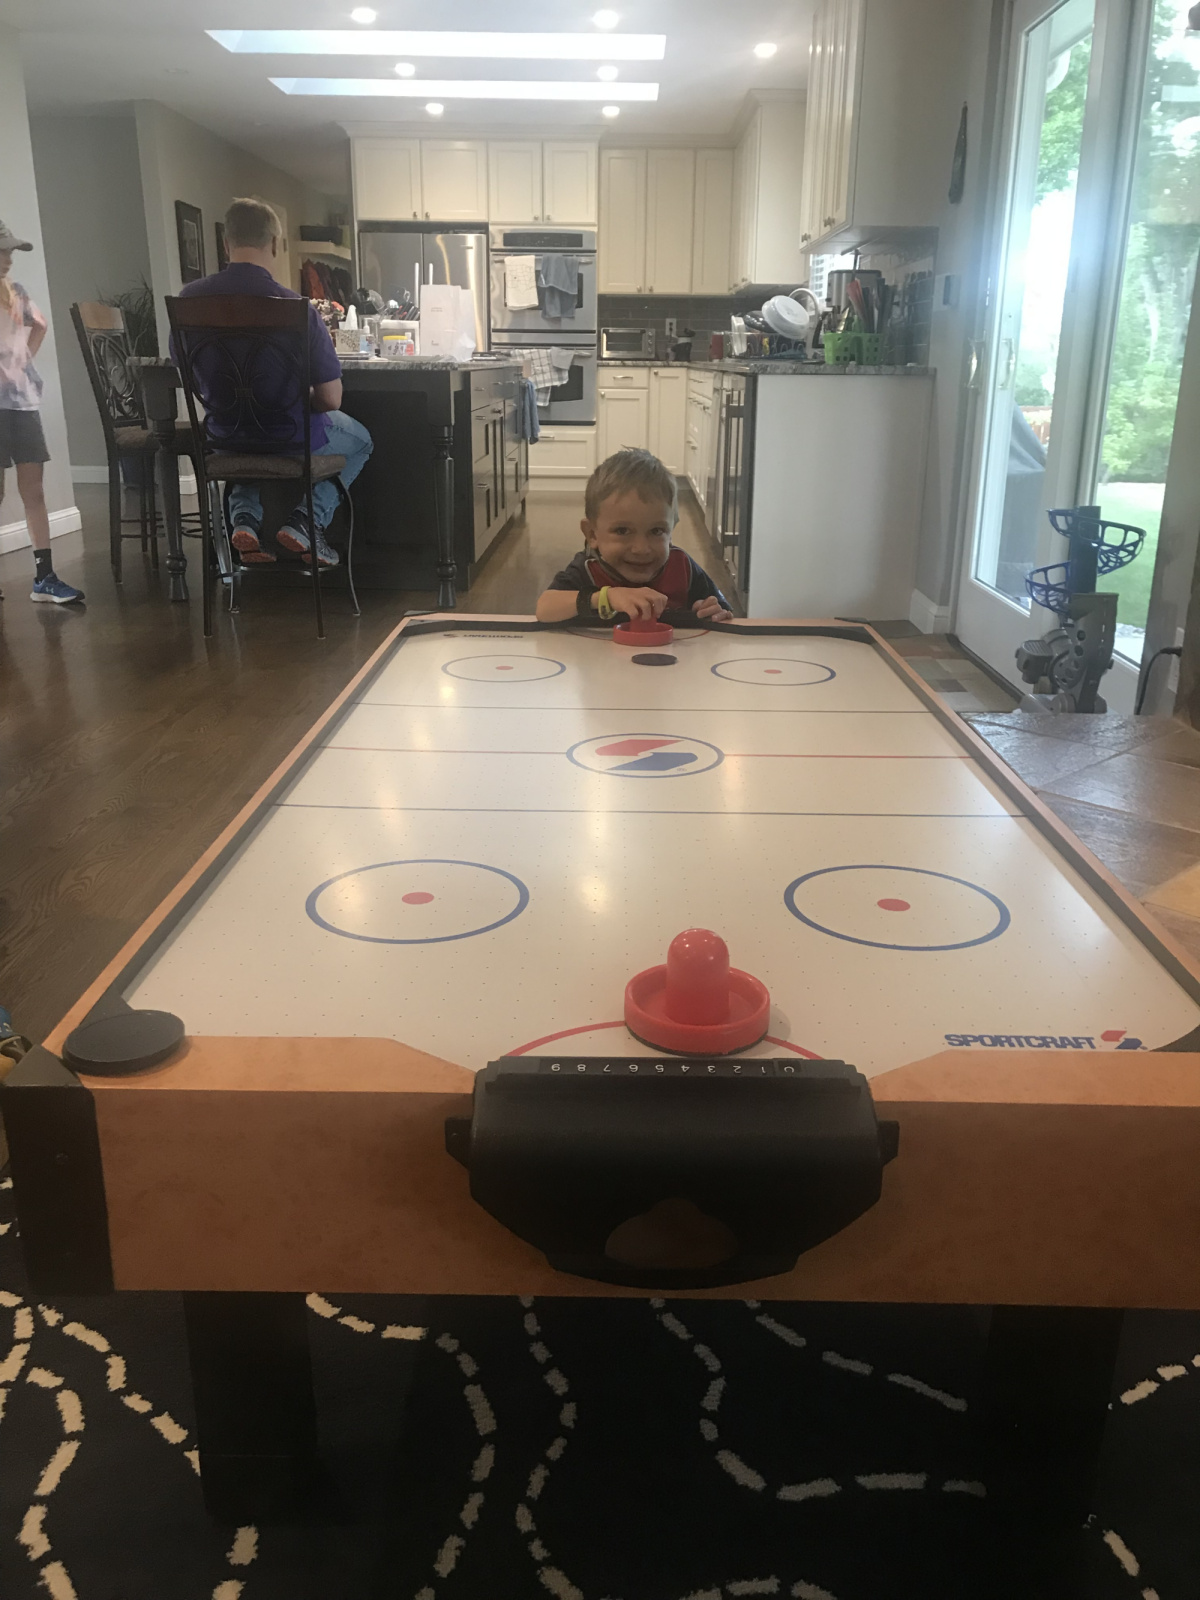 Air hockey. All. The. Time. Thank you to our friend who not only handed down the table to us, but also chopped the legs down to exactly the height Cooper needs.